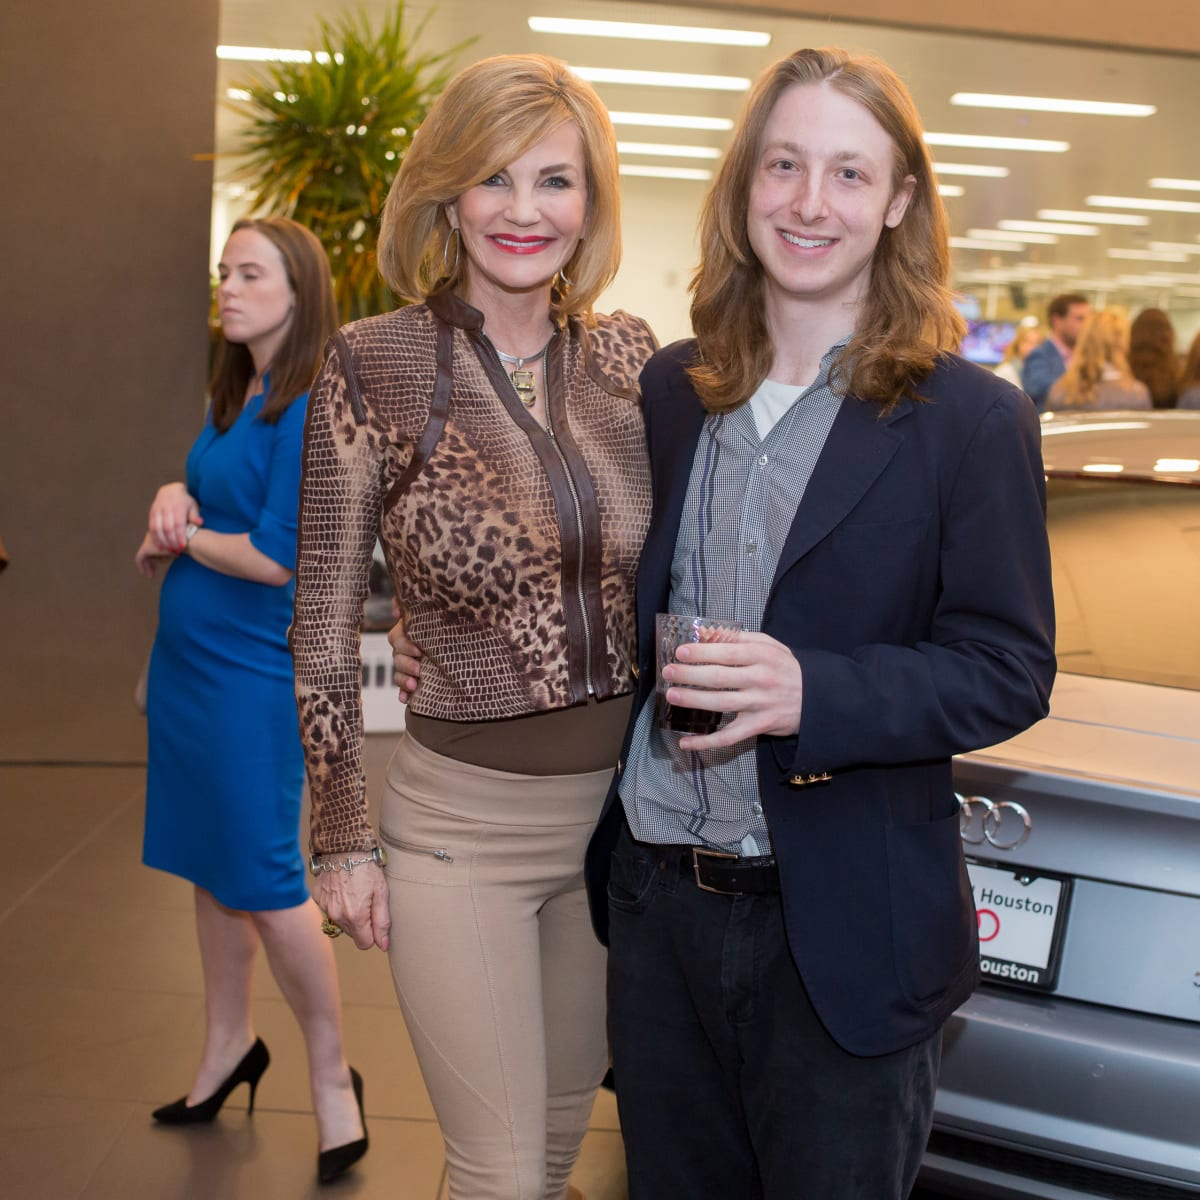 Cattle Baron's Fashion Show, March 2016, Diane Cain, Jason Calvin